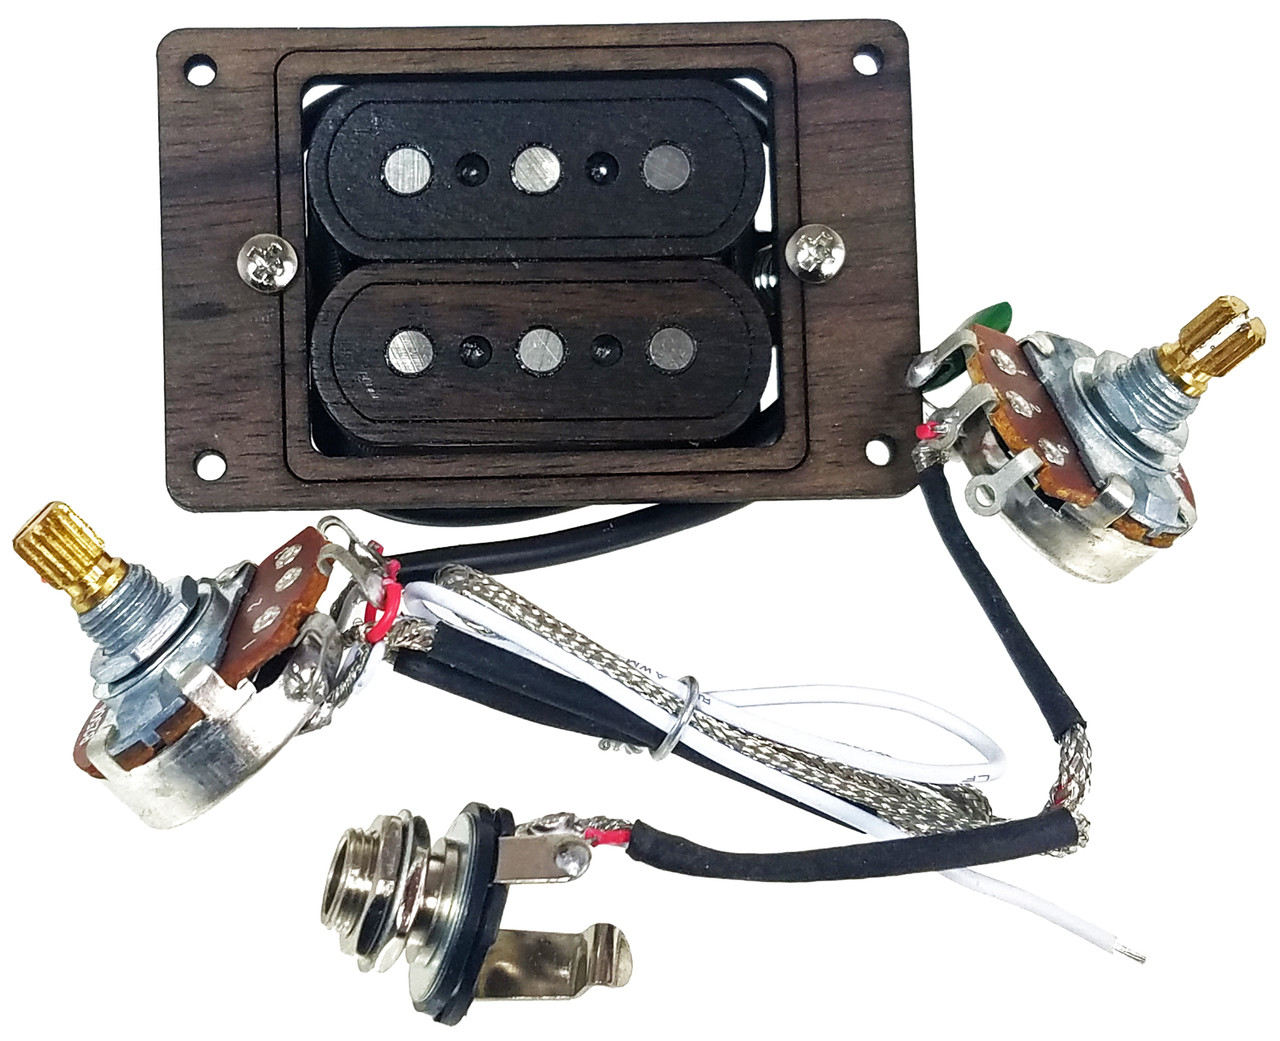 Deltabucker Deluxe 3 String Rosewood Cigar Box Guitar Humbucker Wiring Here Is A Quick Look At How Humbuckers Work And Pickup Pre Wired